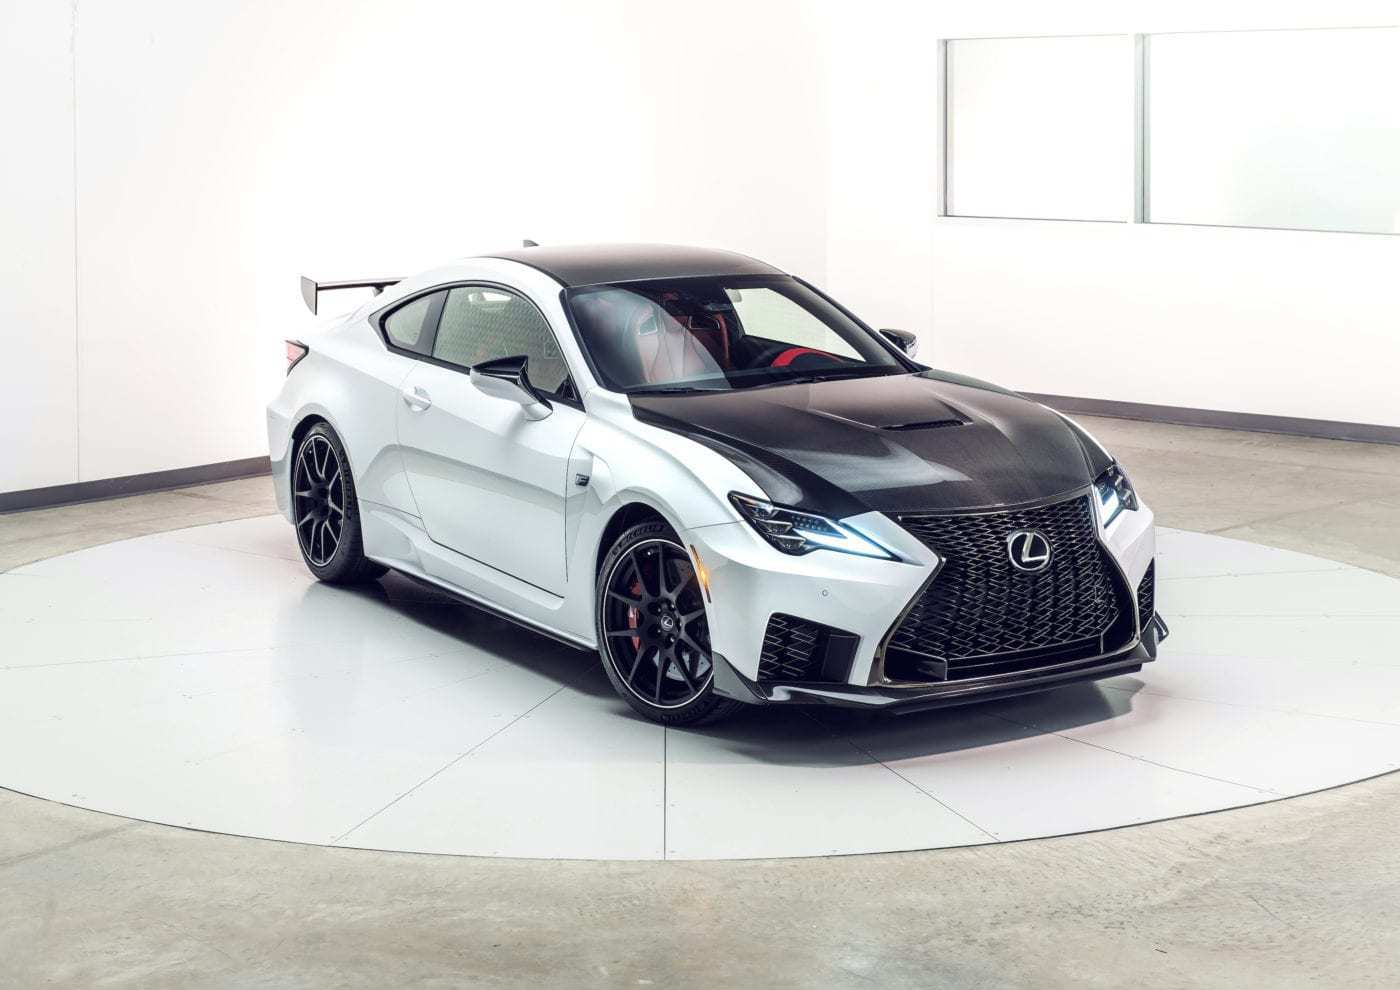 34 The Best 2020 Lexus Rc F Track Edition 0 60 Research New